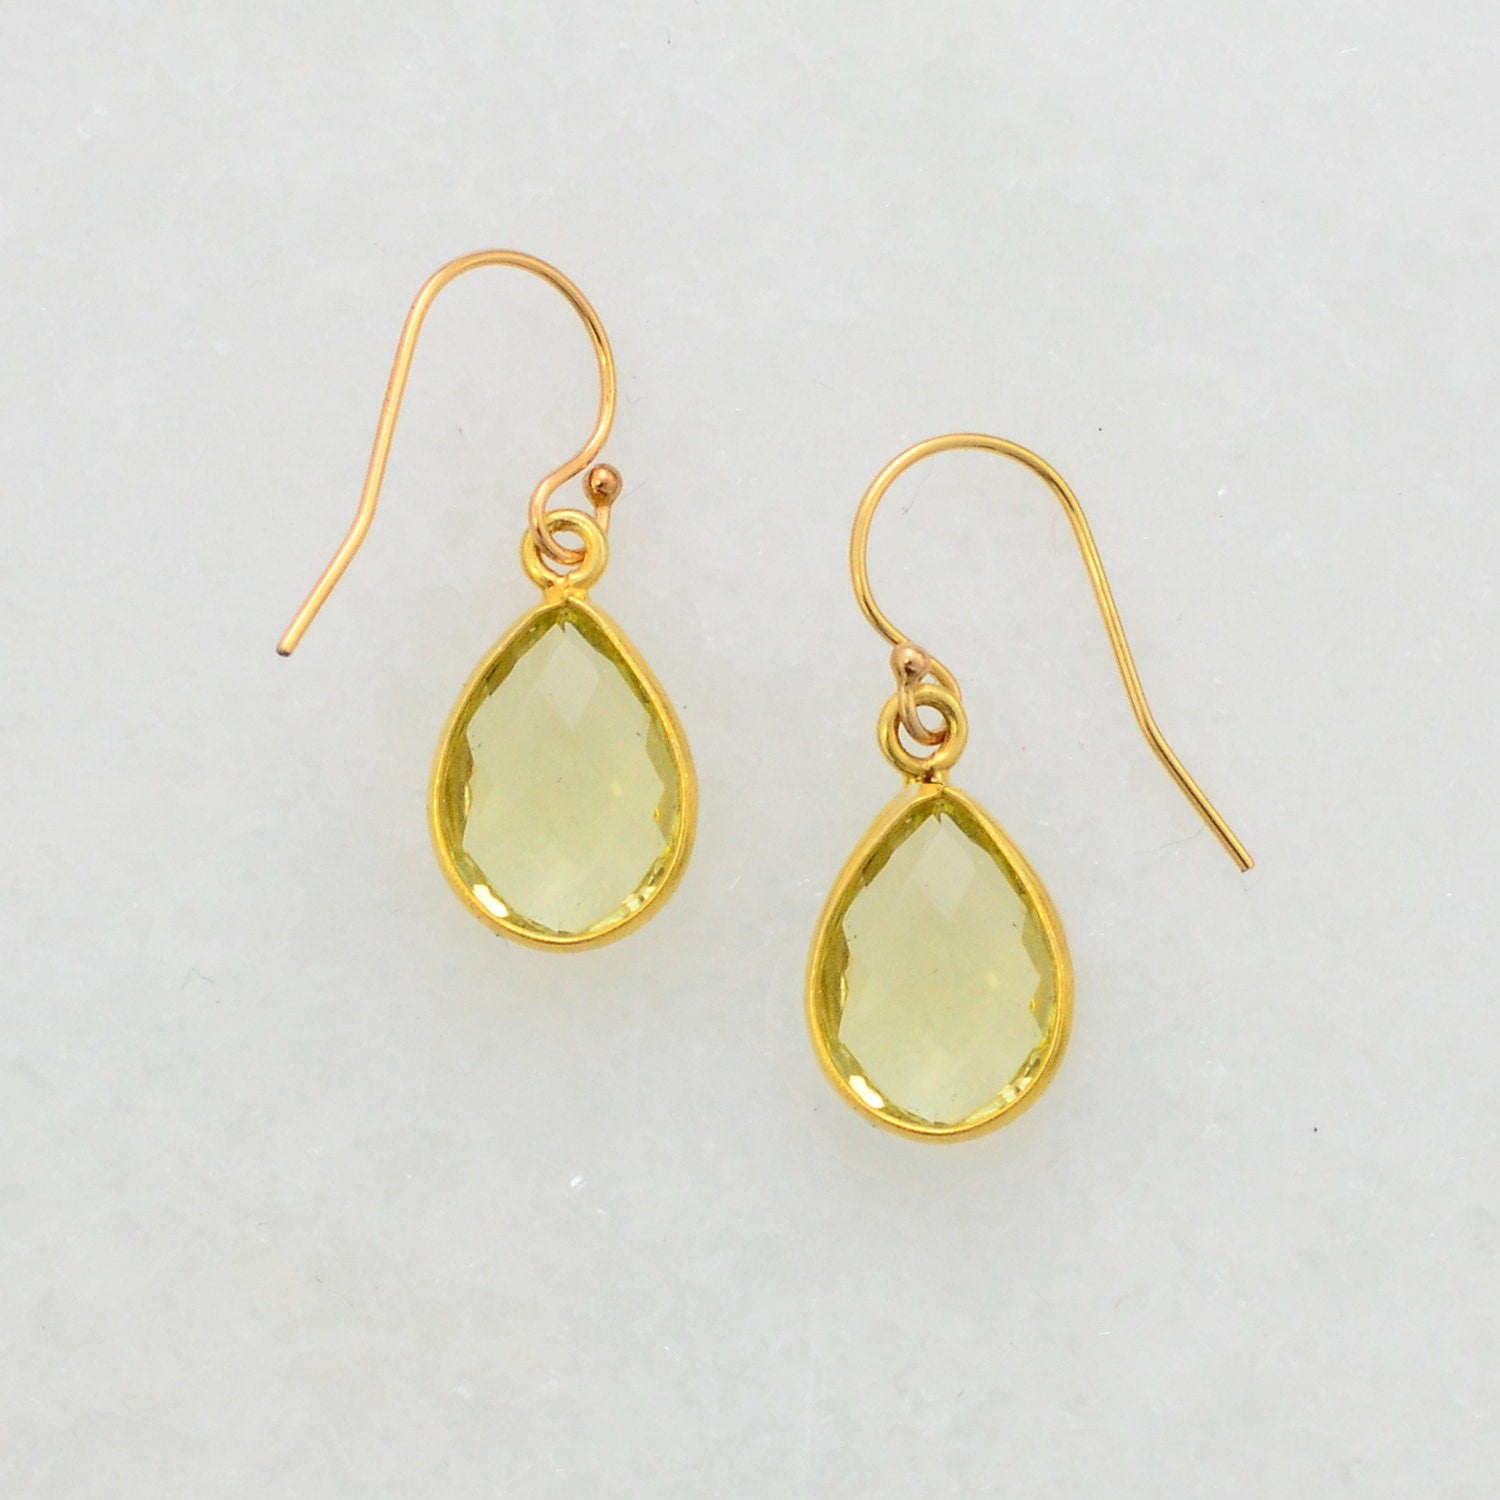 Lemon Quartz Earring - Minimalist Earring - Gold Quartz Earring - Ear Hook - Small Cute Earring - Dangle and Drop Earring - Everyday Earring